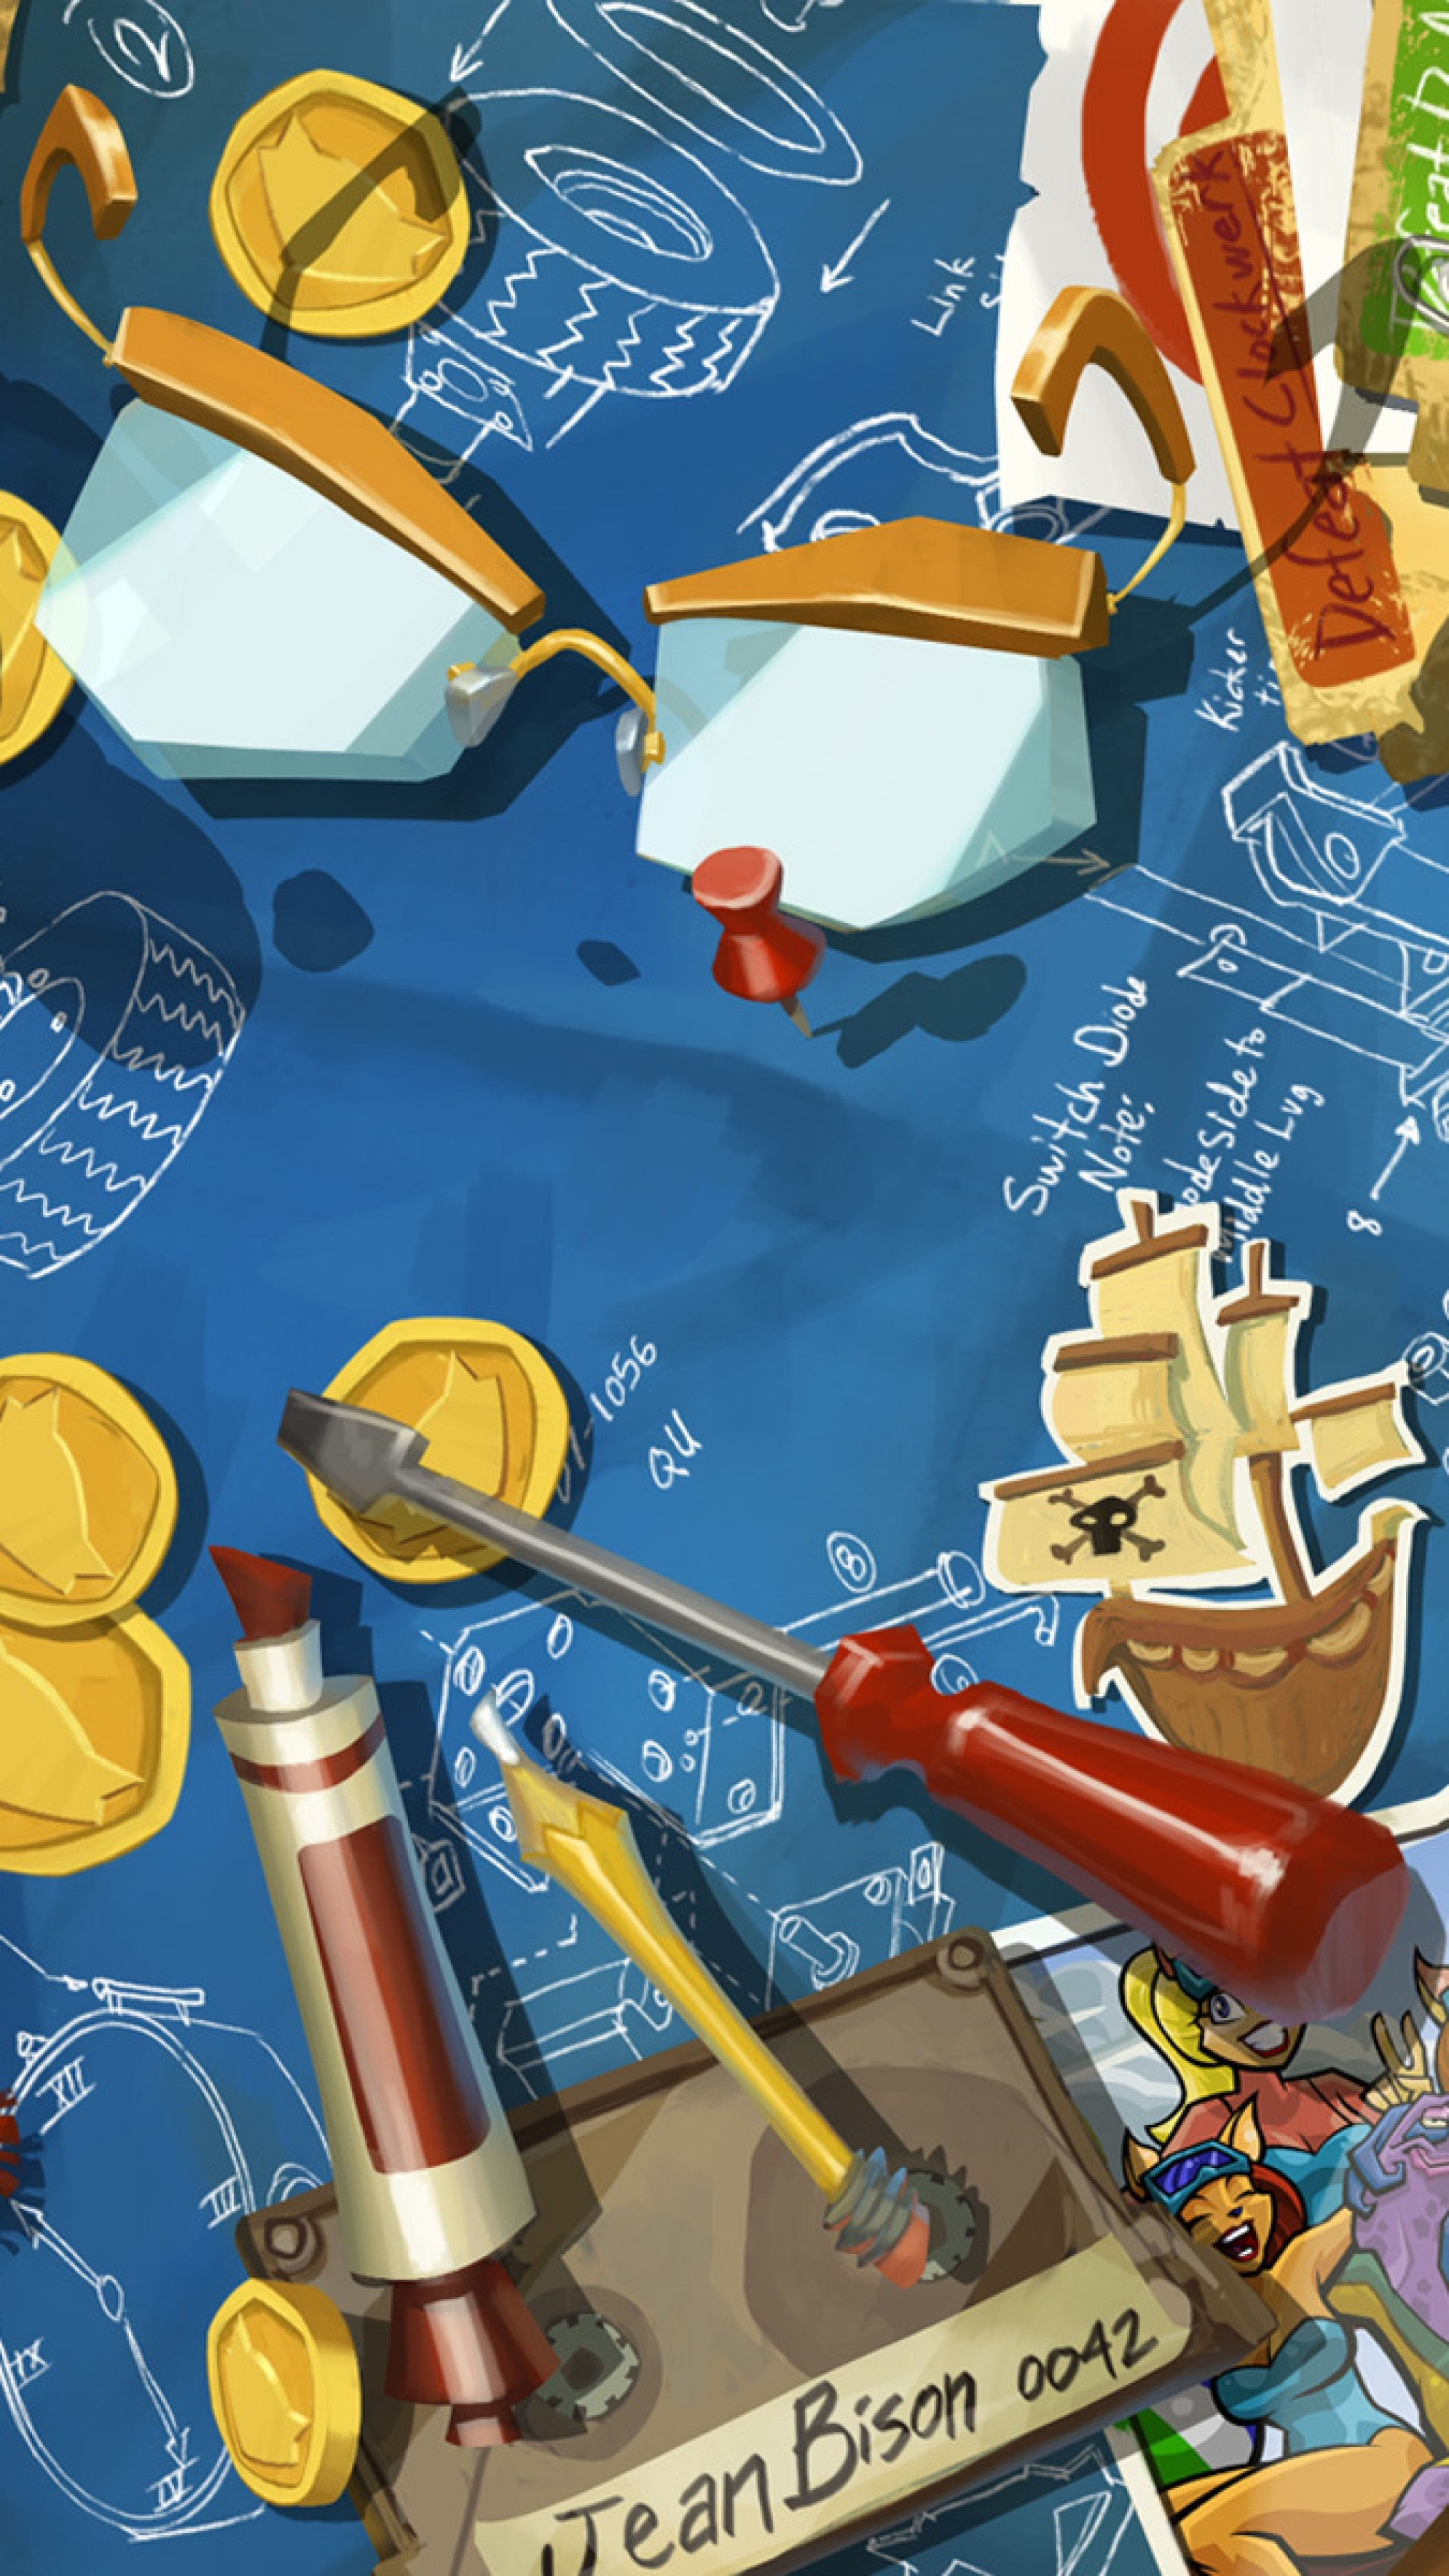 Wallpaper sly cooper, thieves in time, wrench, screwdriver, coin